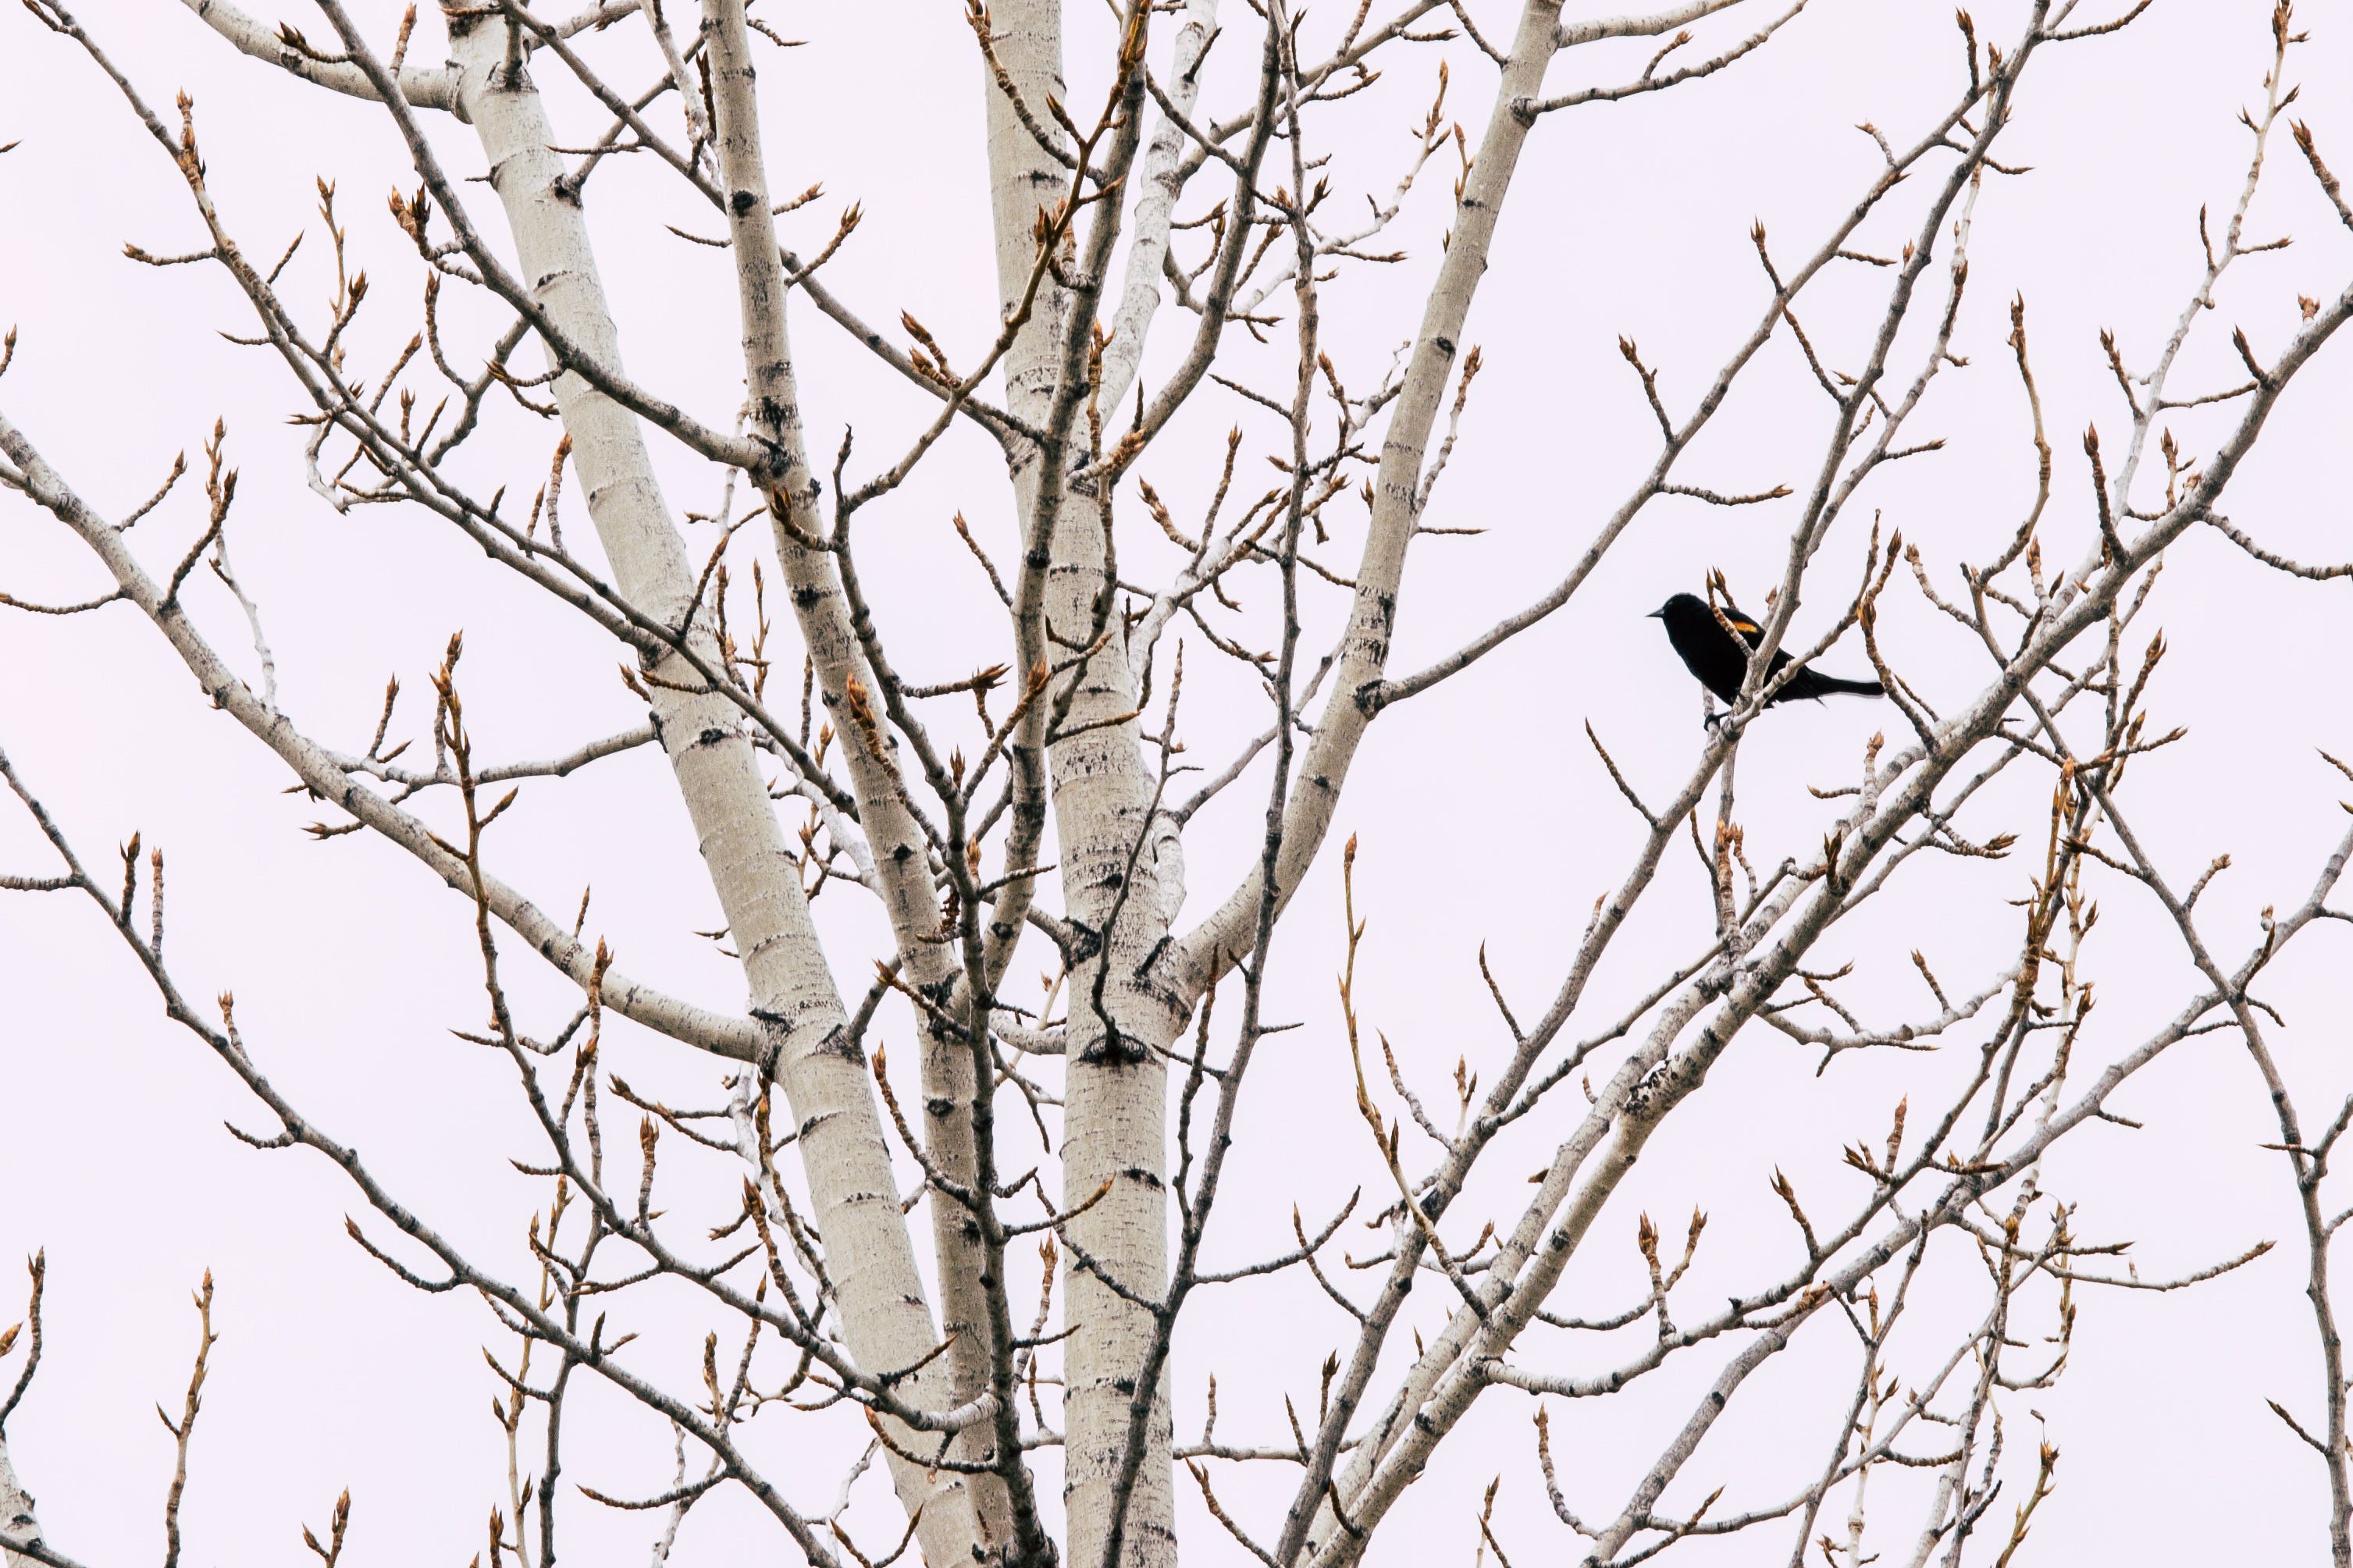 Black Bird on Gray Bare Tree